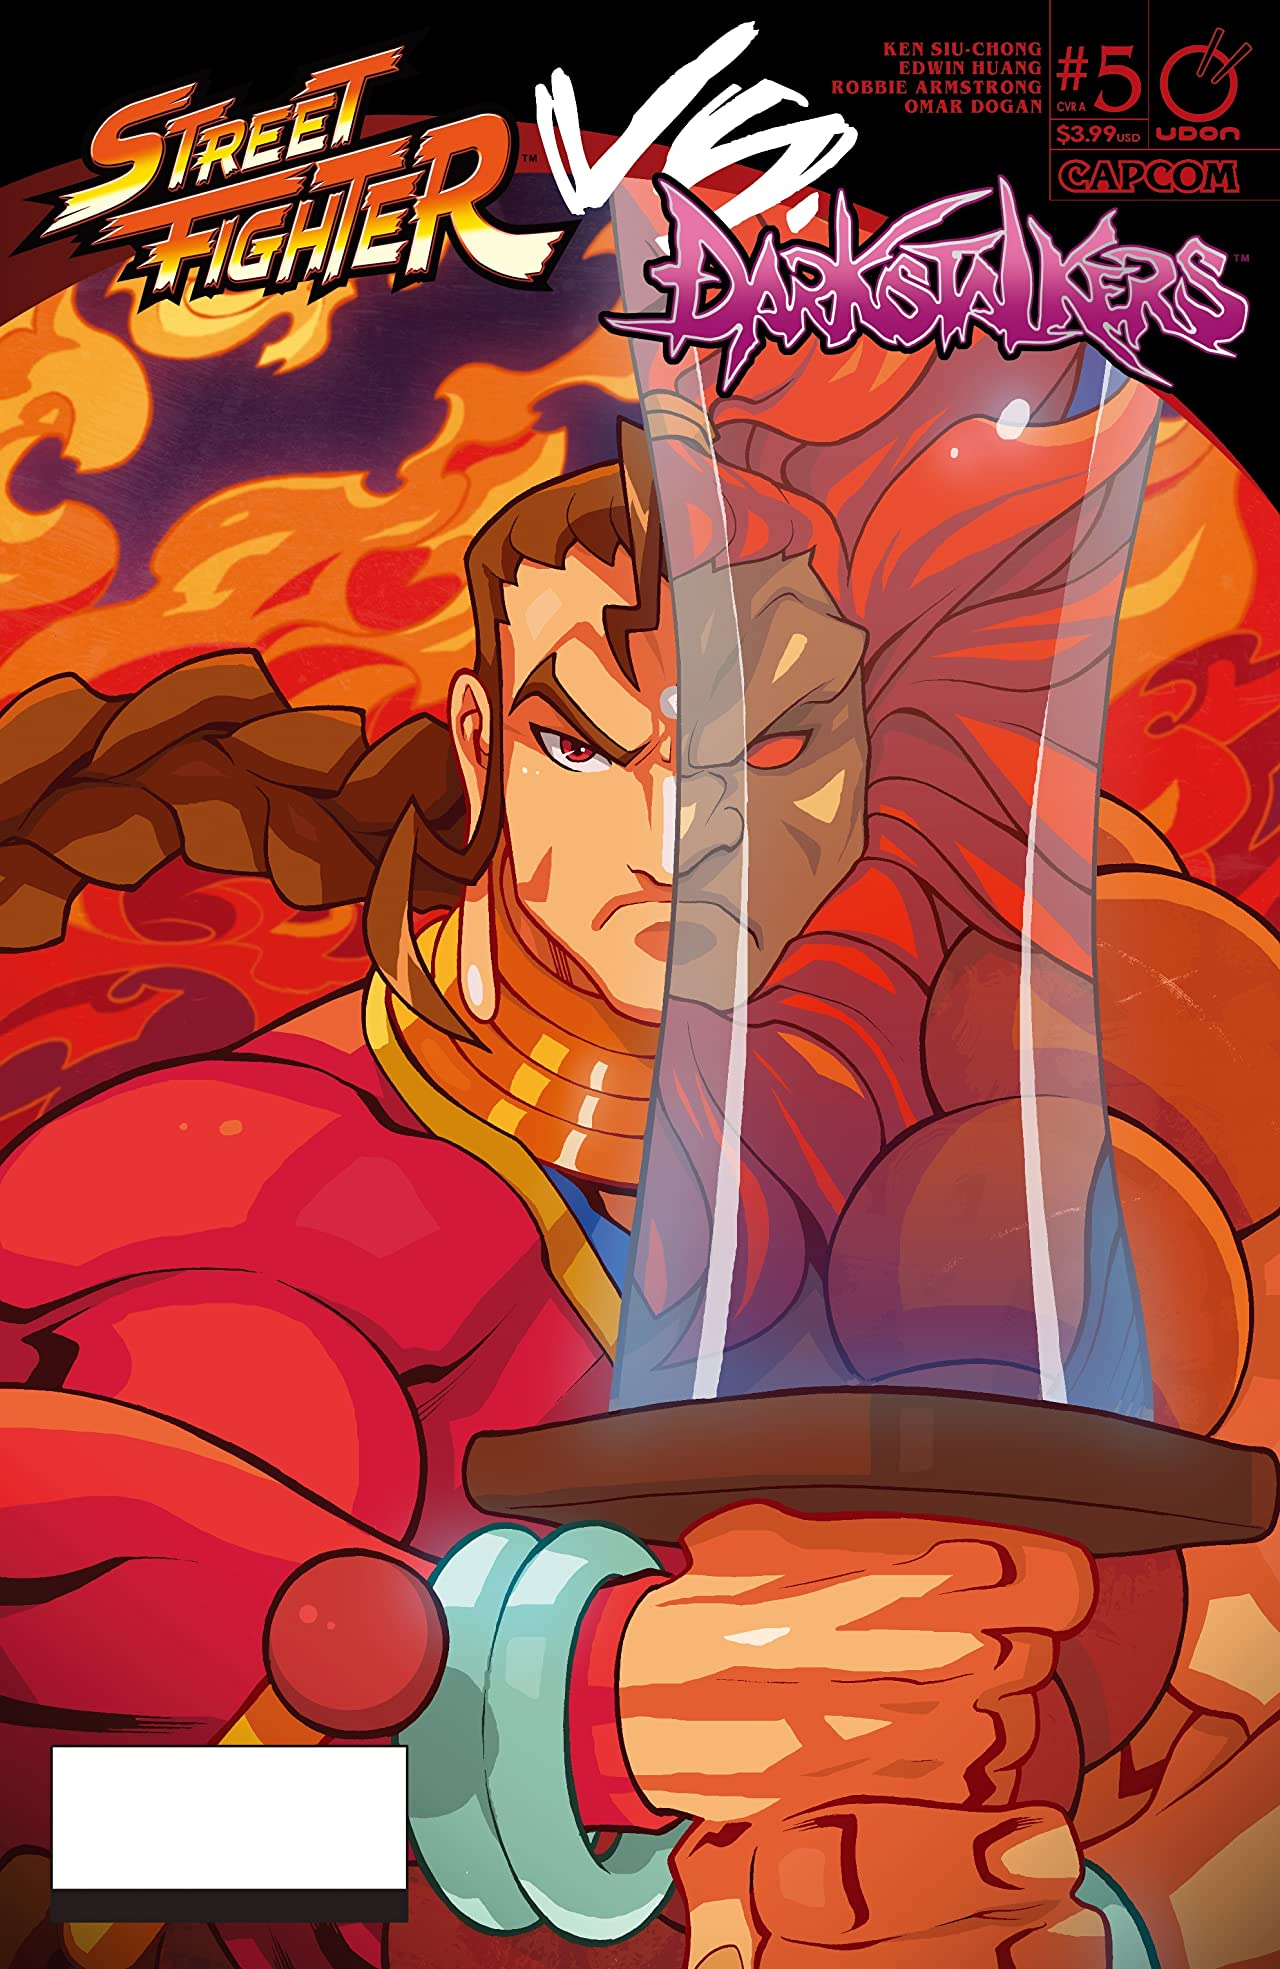 Street Fighter VS Darkstalkers #5 (of 8)